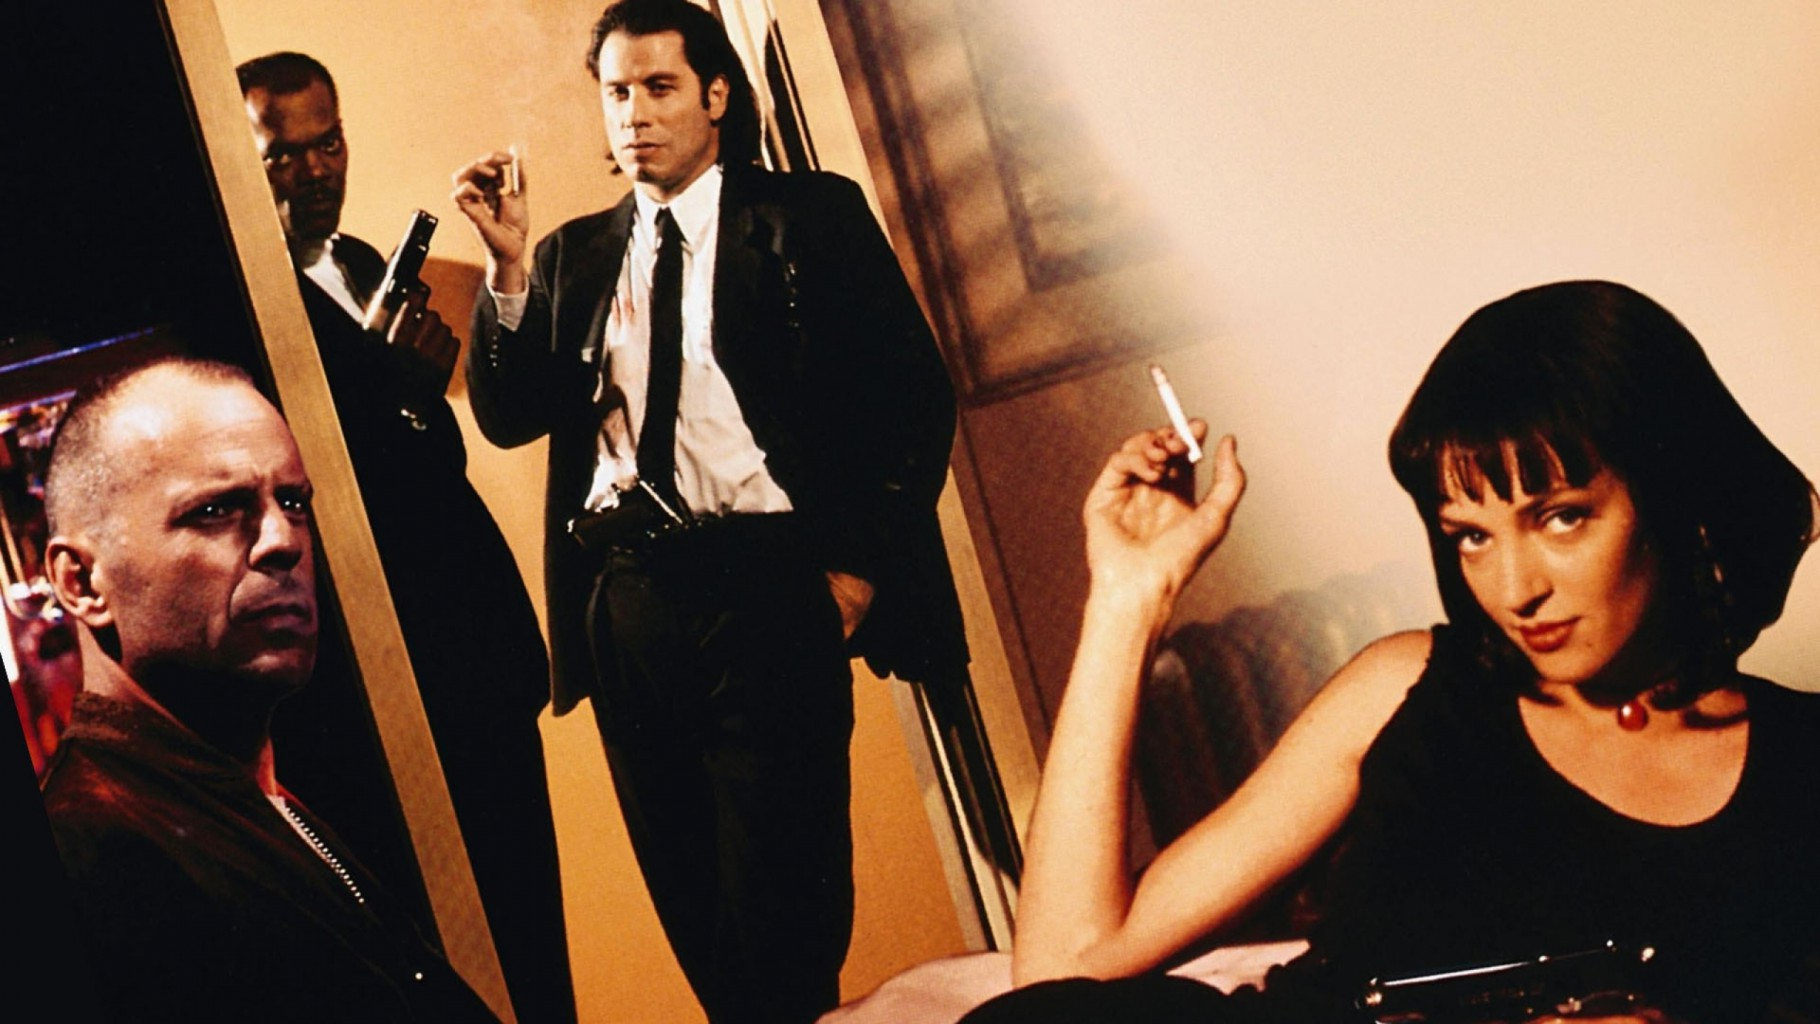 pulp_fiction_uma_thurman_samue_2560x1440_wallpapername.com